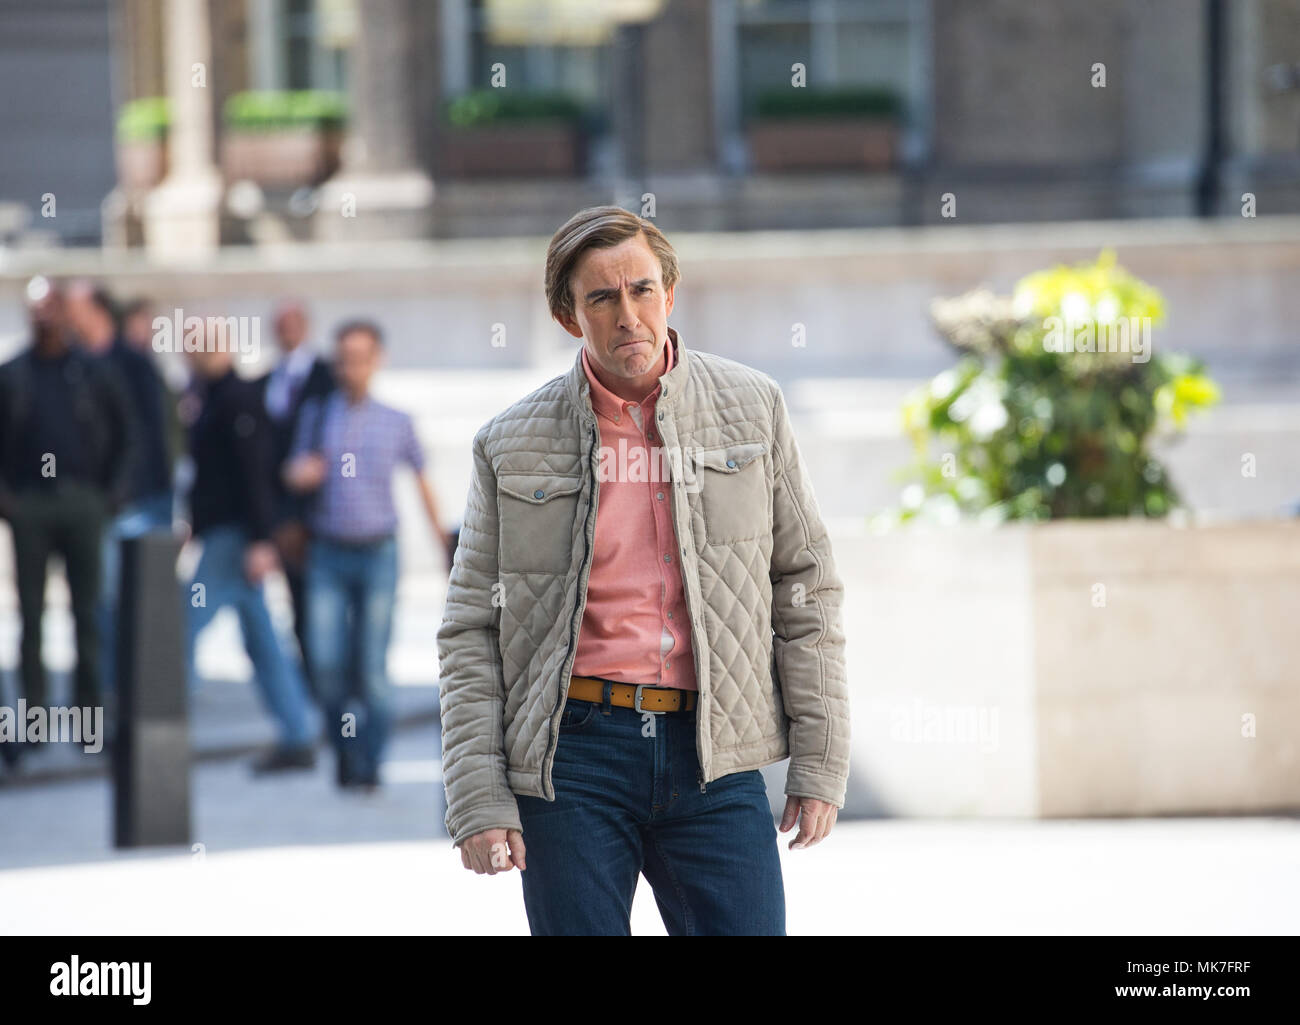 Actor, writer and comedian, Steve Coogan, playing the part of Alan Partridge outside the BBC Studios in central London - Stock Image